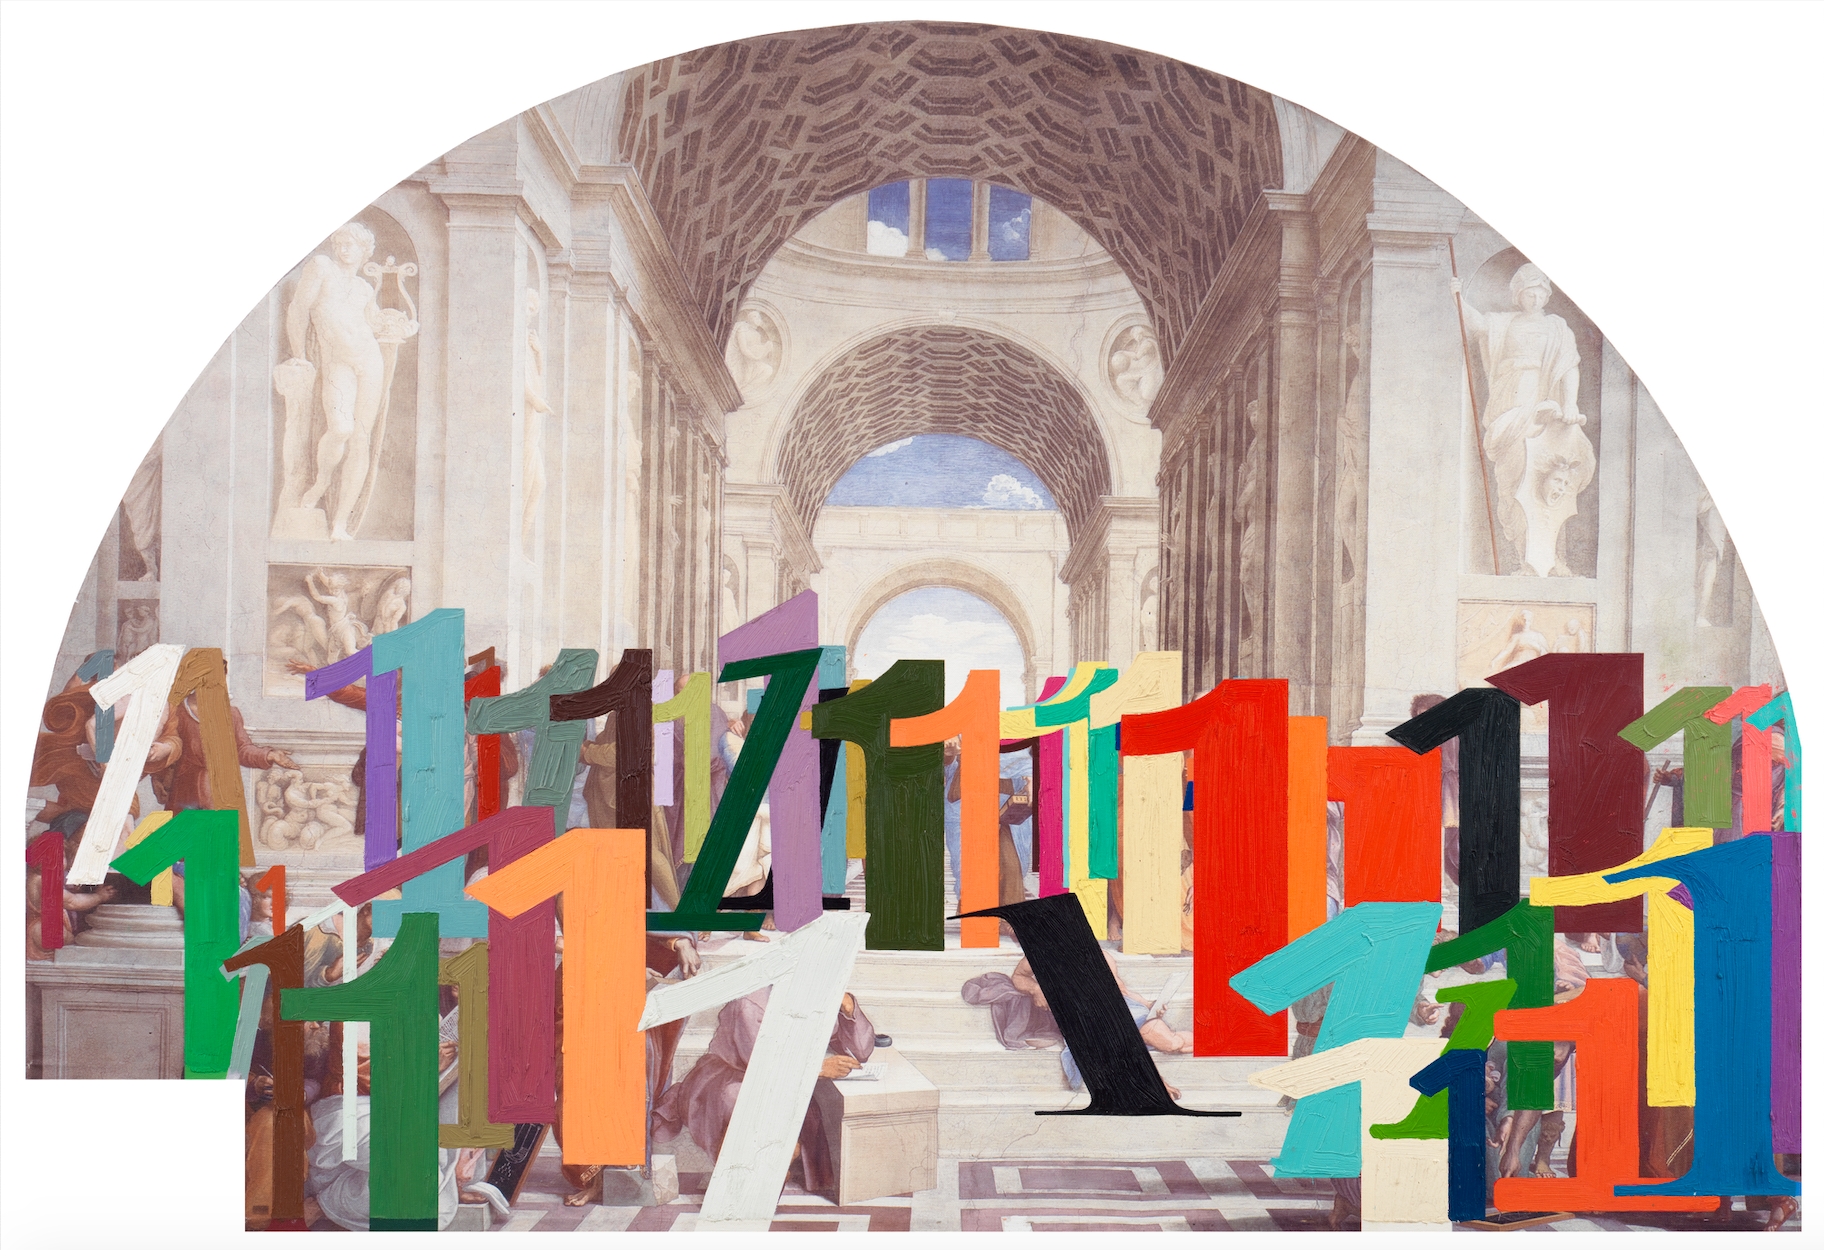 [Image Description: A semicircular image depicts a painted greco-roman interior. The cavernous room is made of carved marble, with lofty vaulted ceilings, and allegorical marble sculptures on the walls. Across the foreground the number 1 is depicted in numerous sizes, shapes, and colors.]